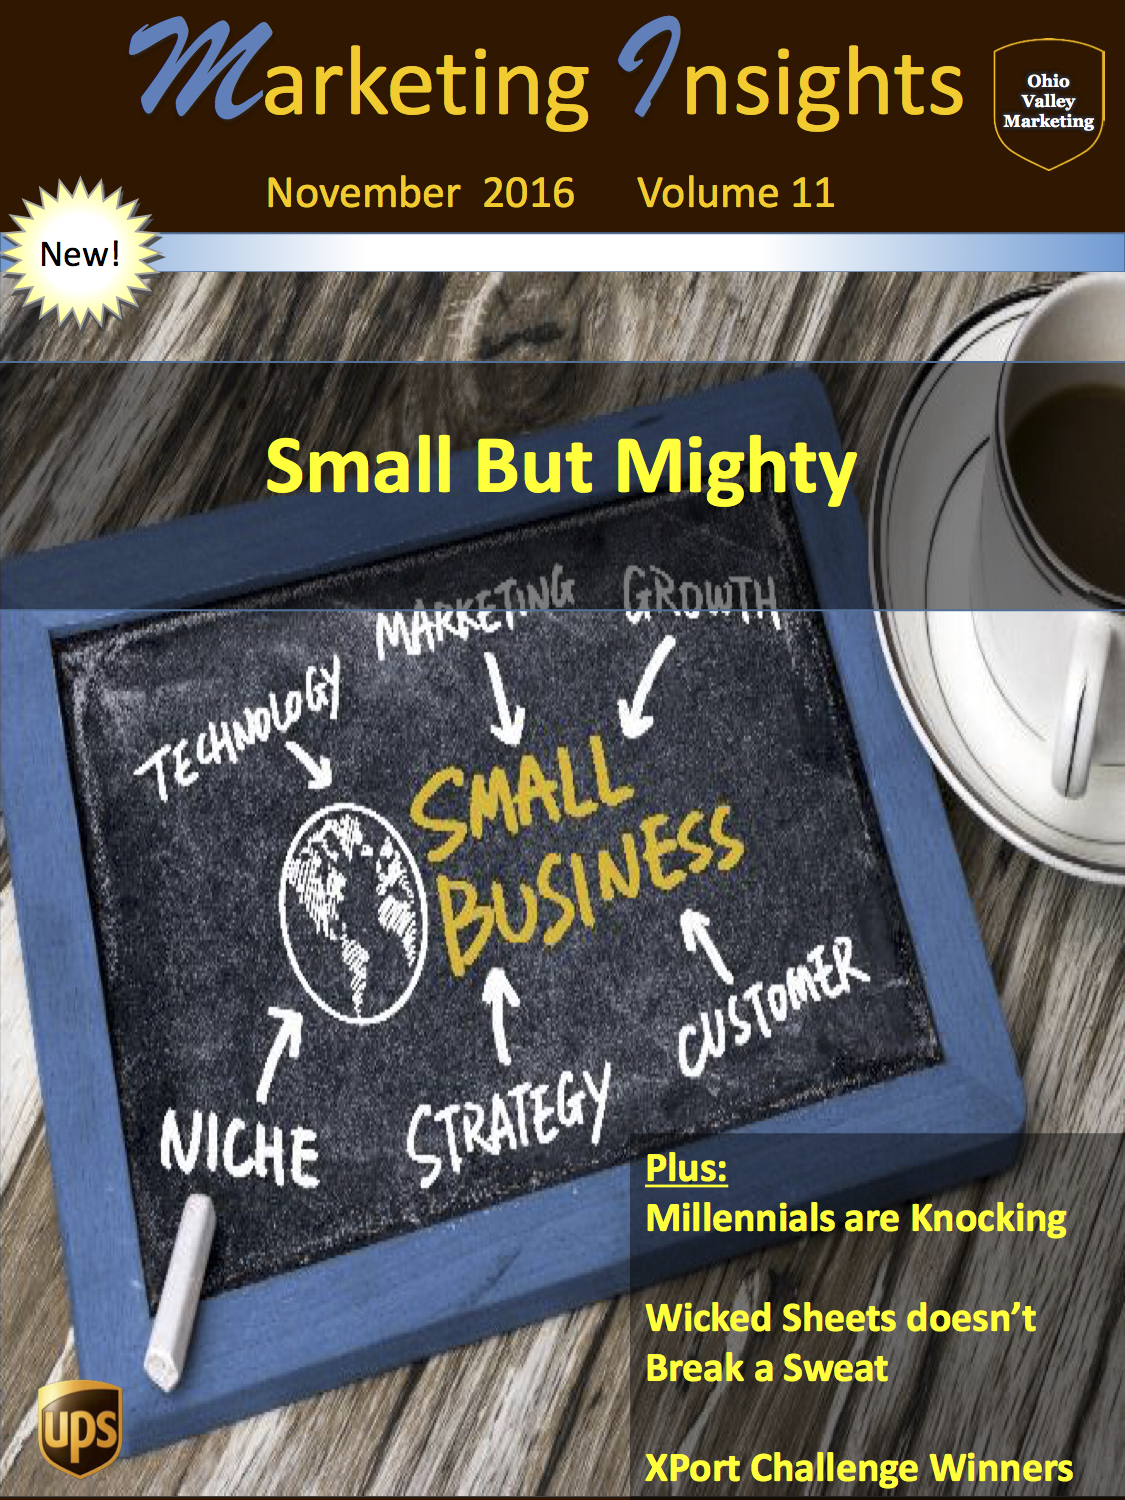 UPS marketing insights volume 11 small but mighty wicked sheets doesn't break a sweat